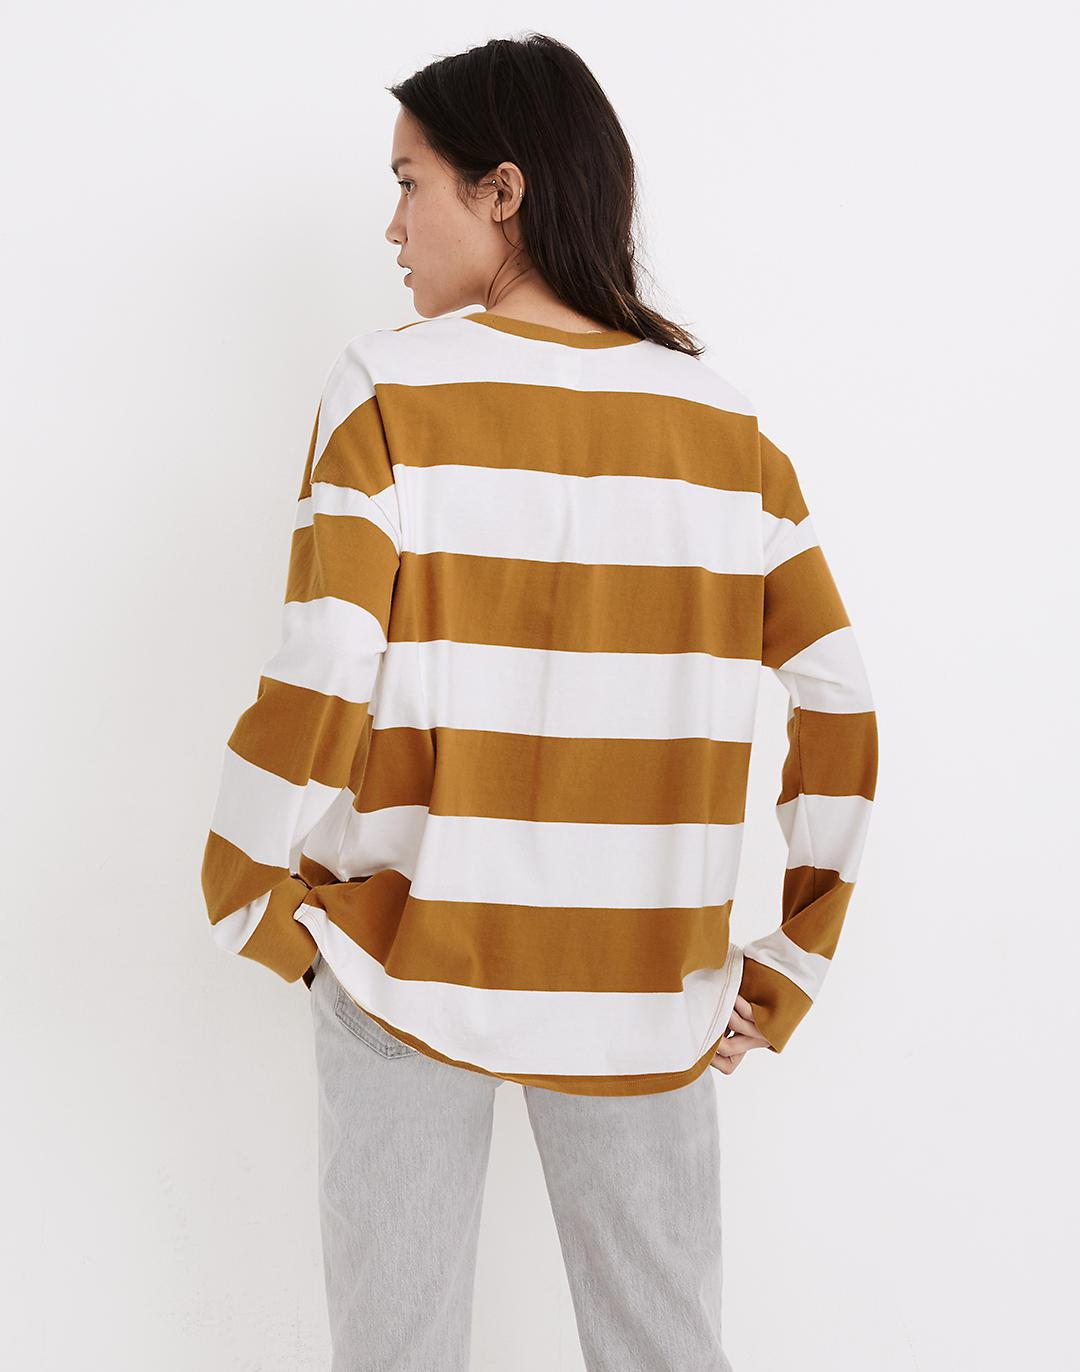 (Re)sourced Cotton Newville Tee in Lindell Stripe 2